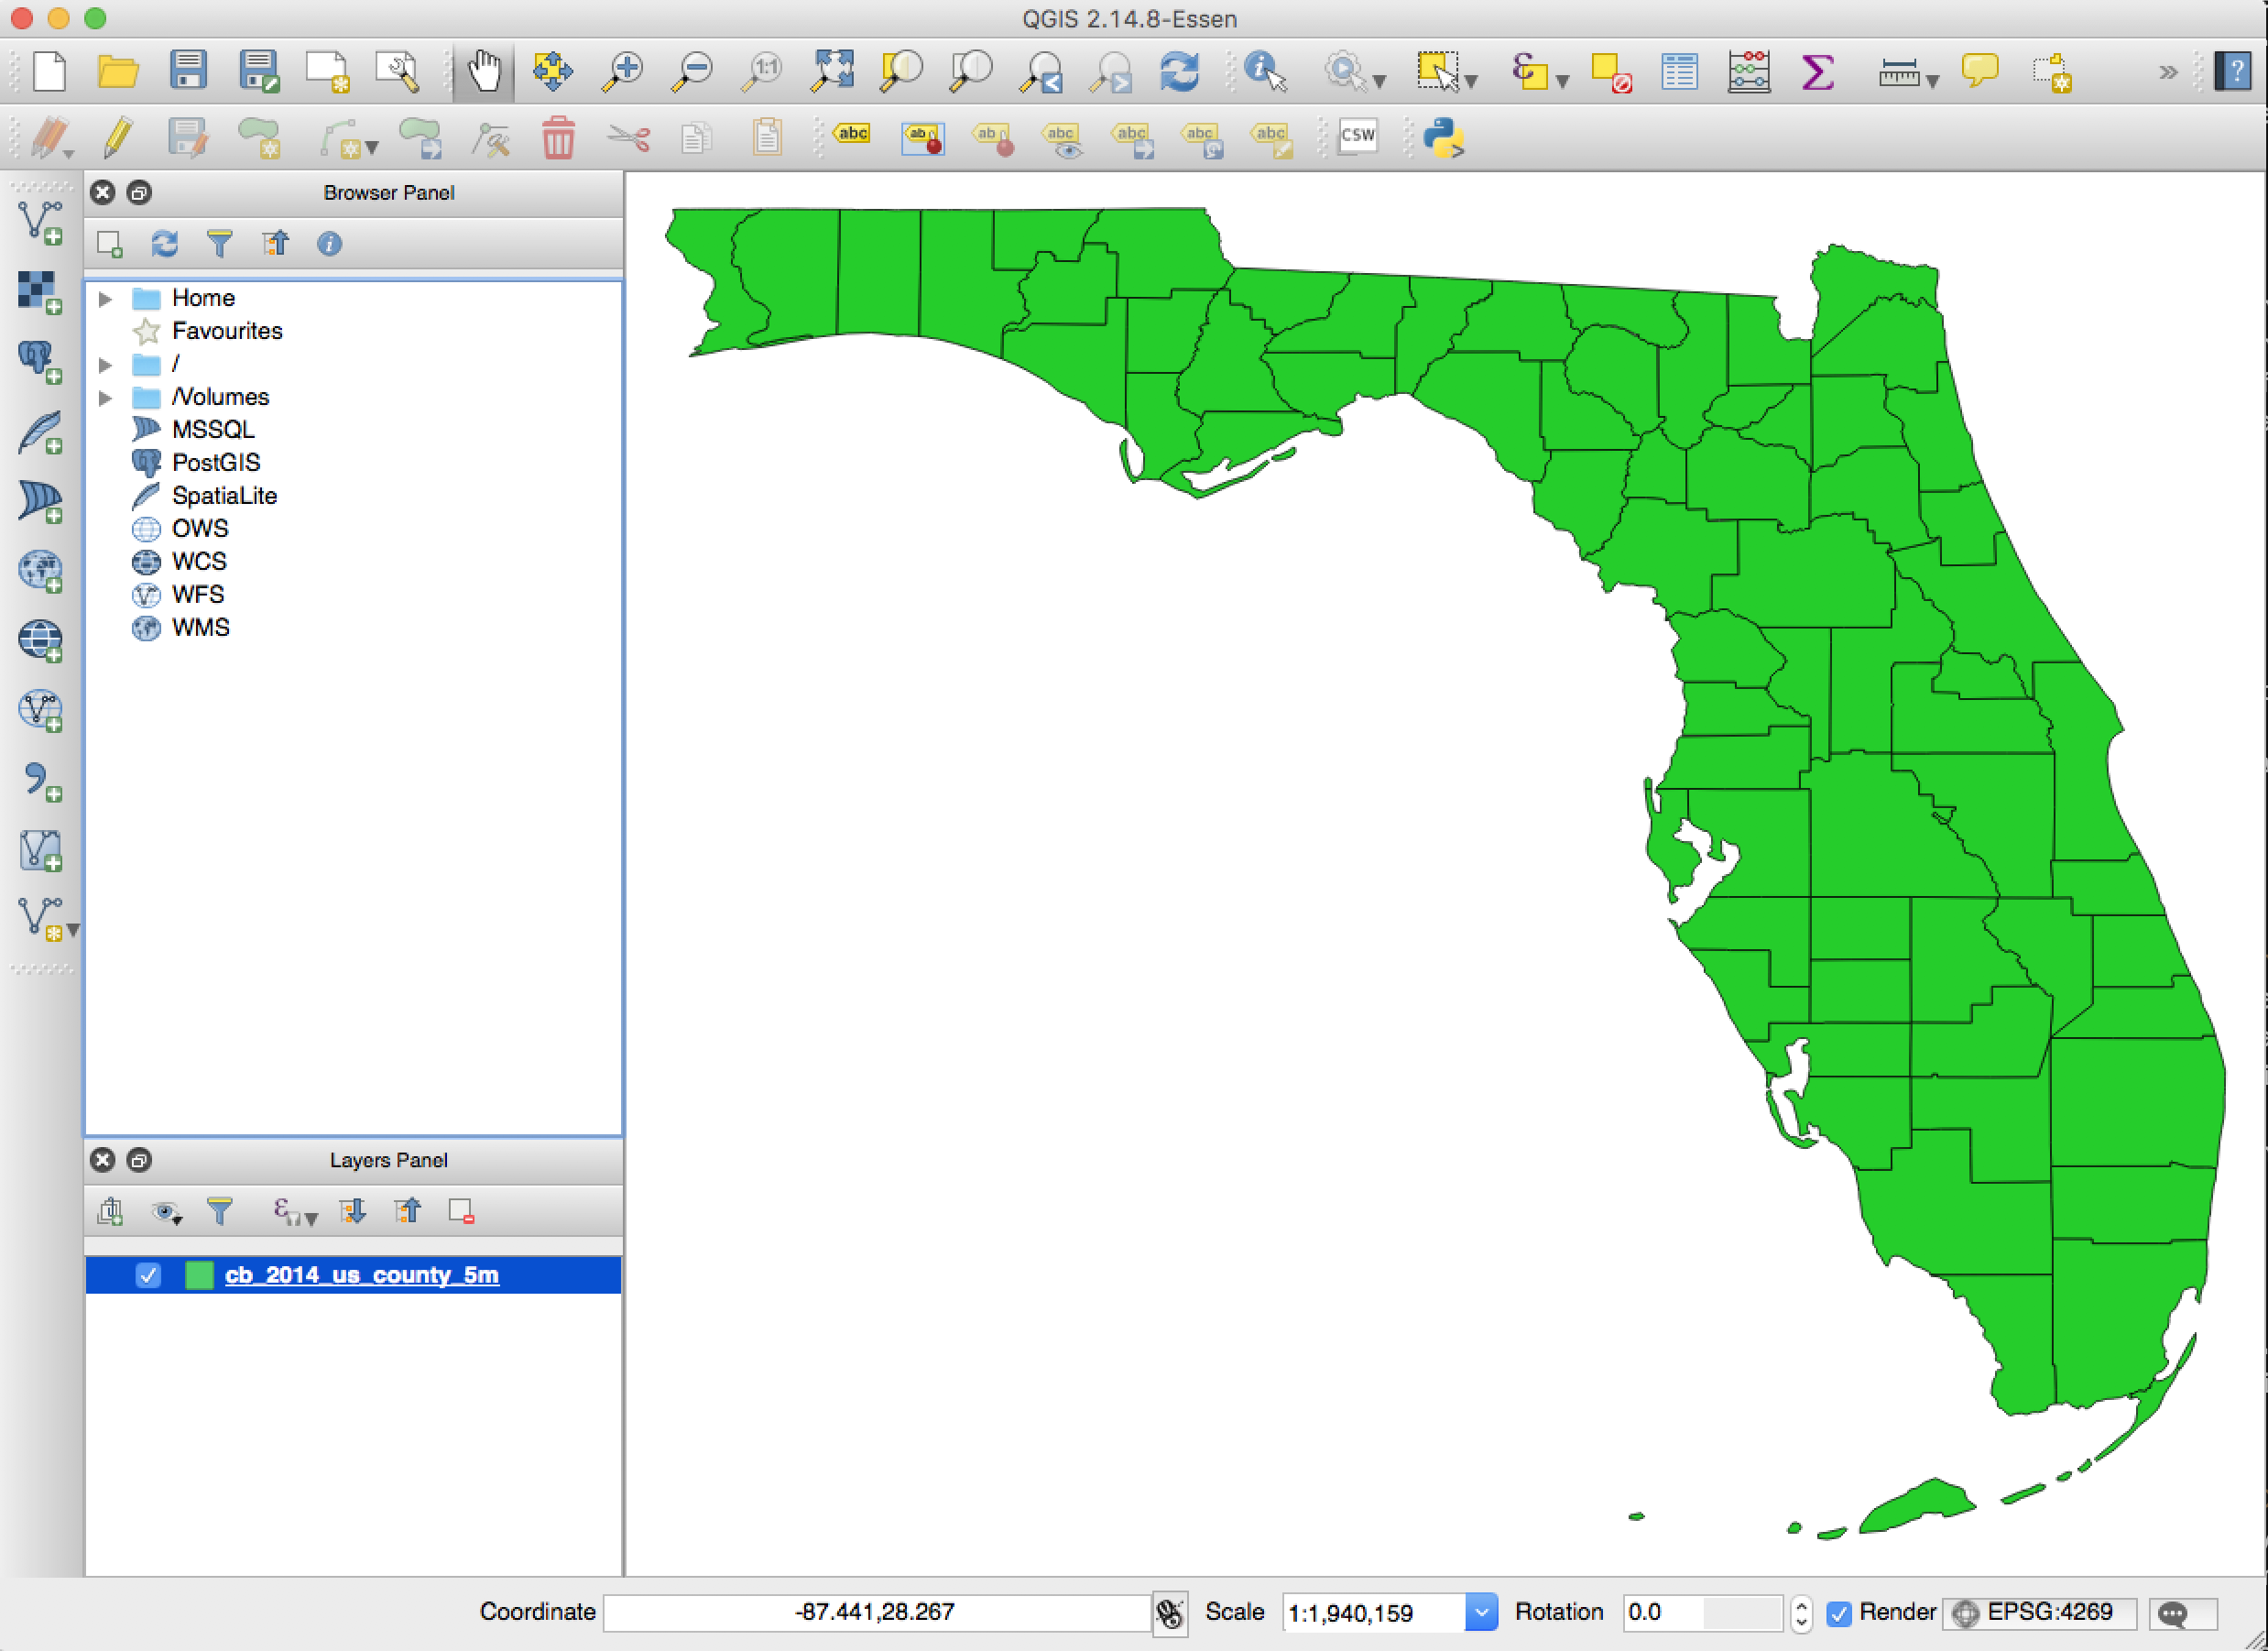 Election Maps Part II: Mapping with QGIS - kevinyaro.ch